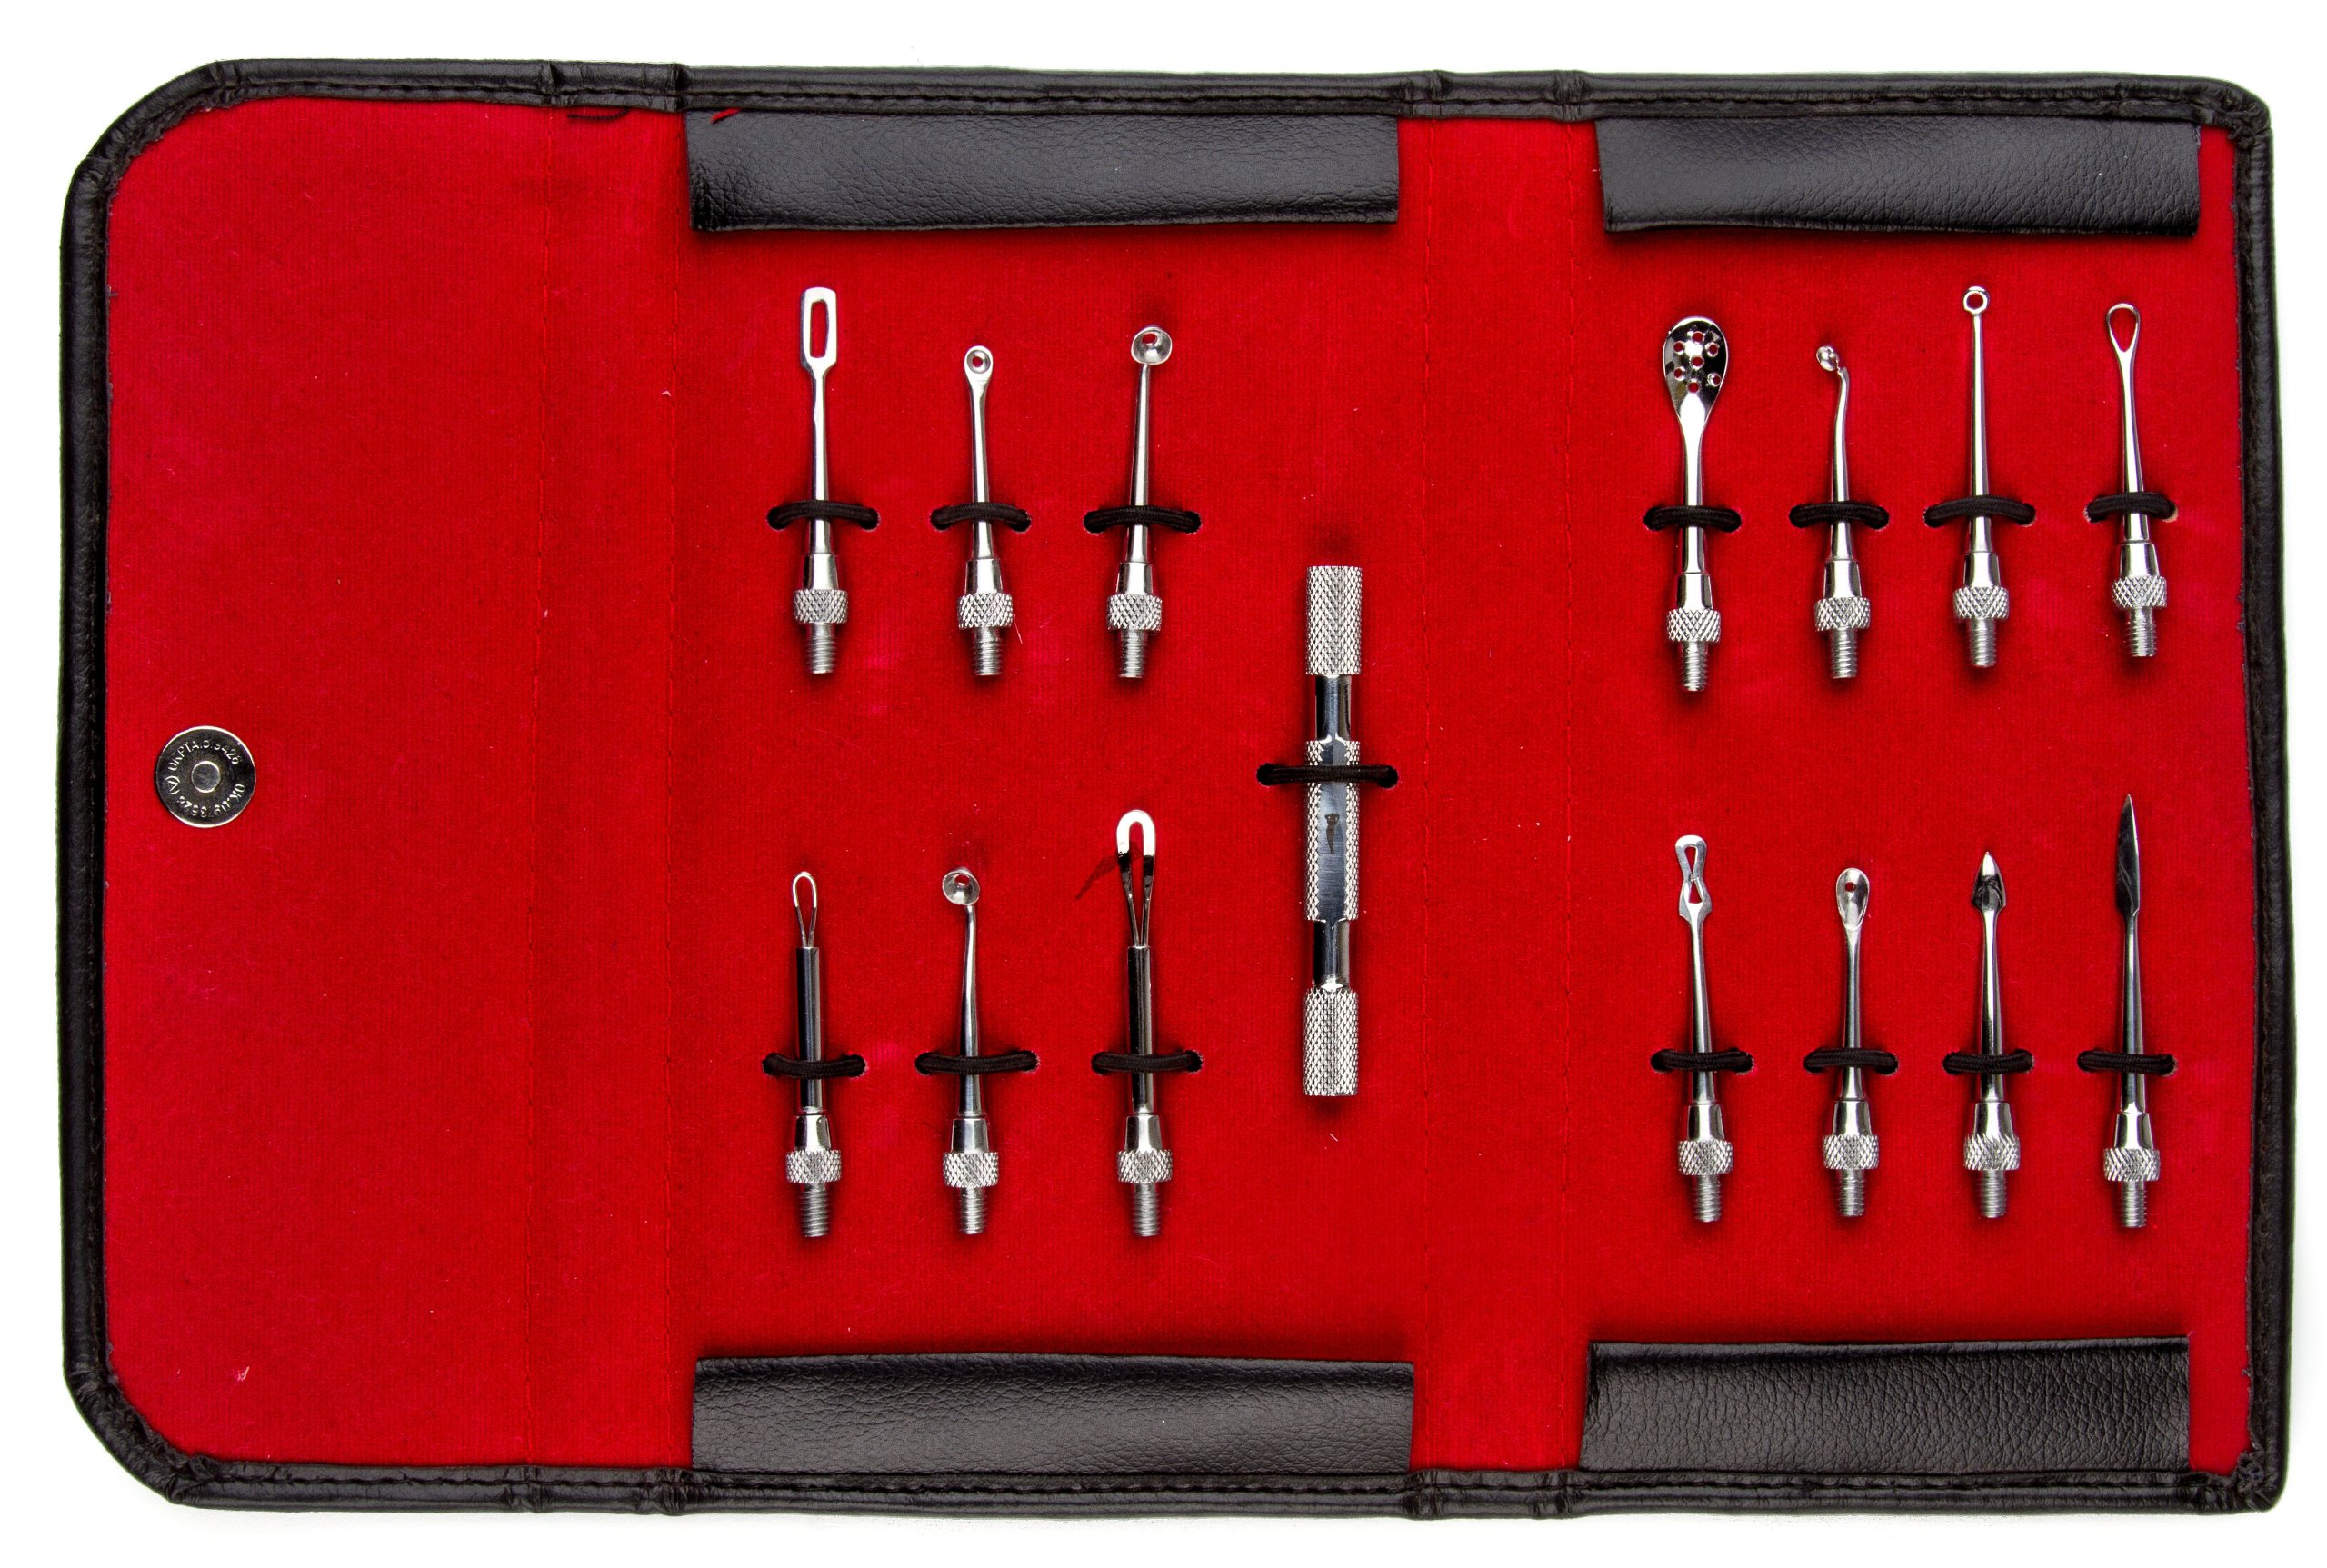 Princess Care 15pc Blackhead Remover Set with leather case (1 handle 14 Tips) - 420 Stainles Steel